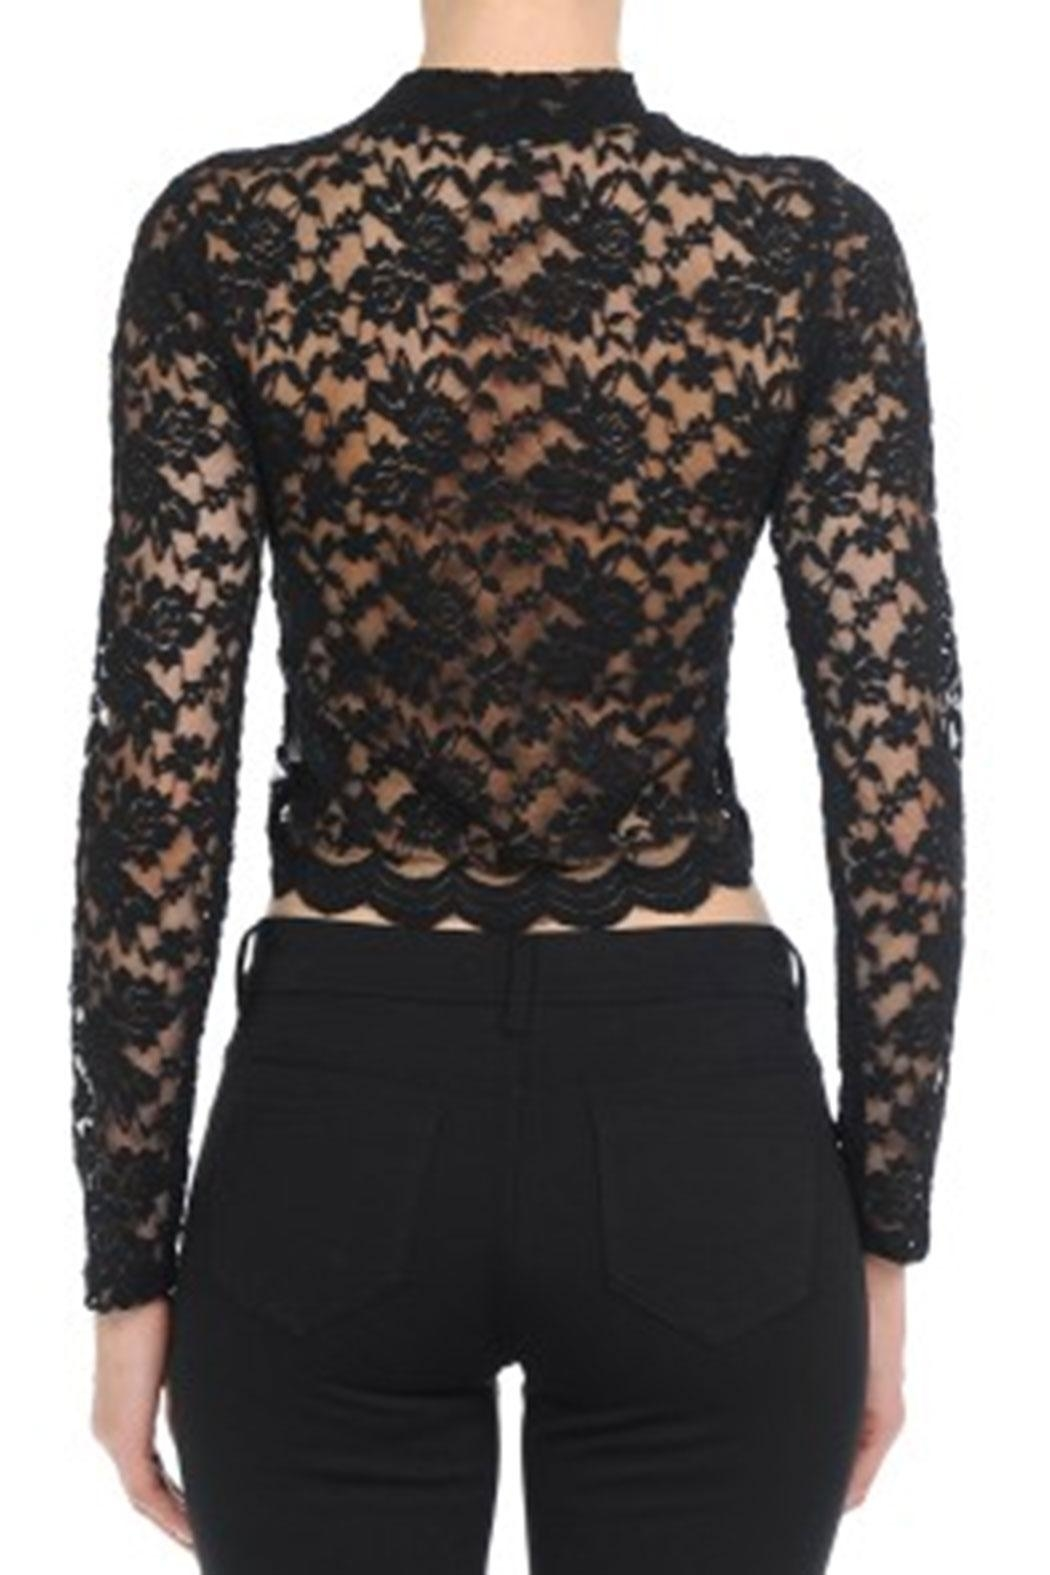 ambiance apparel Lace L/s Crop-Top - Side Cropped Image